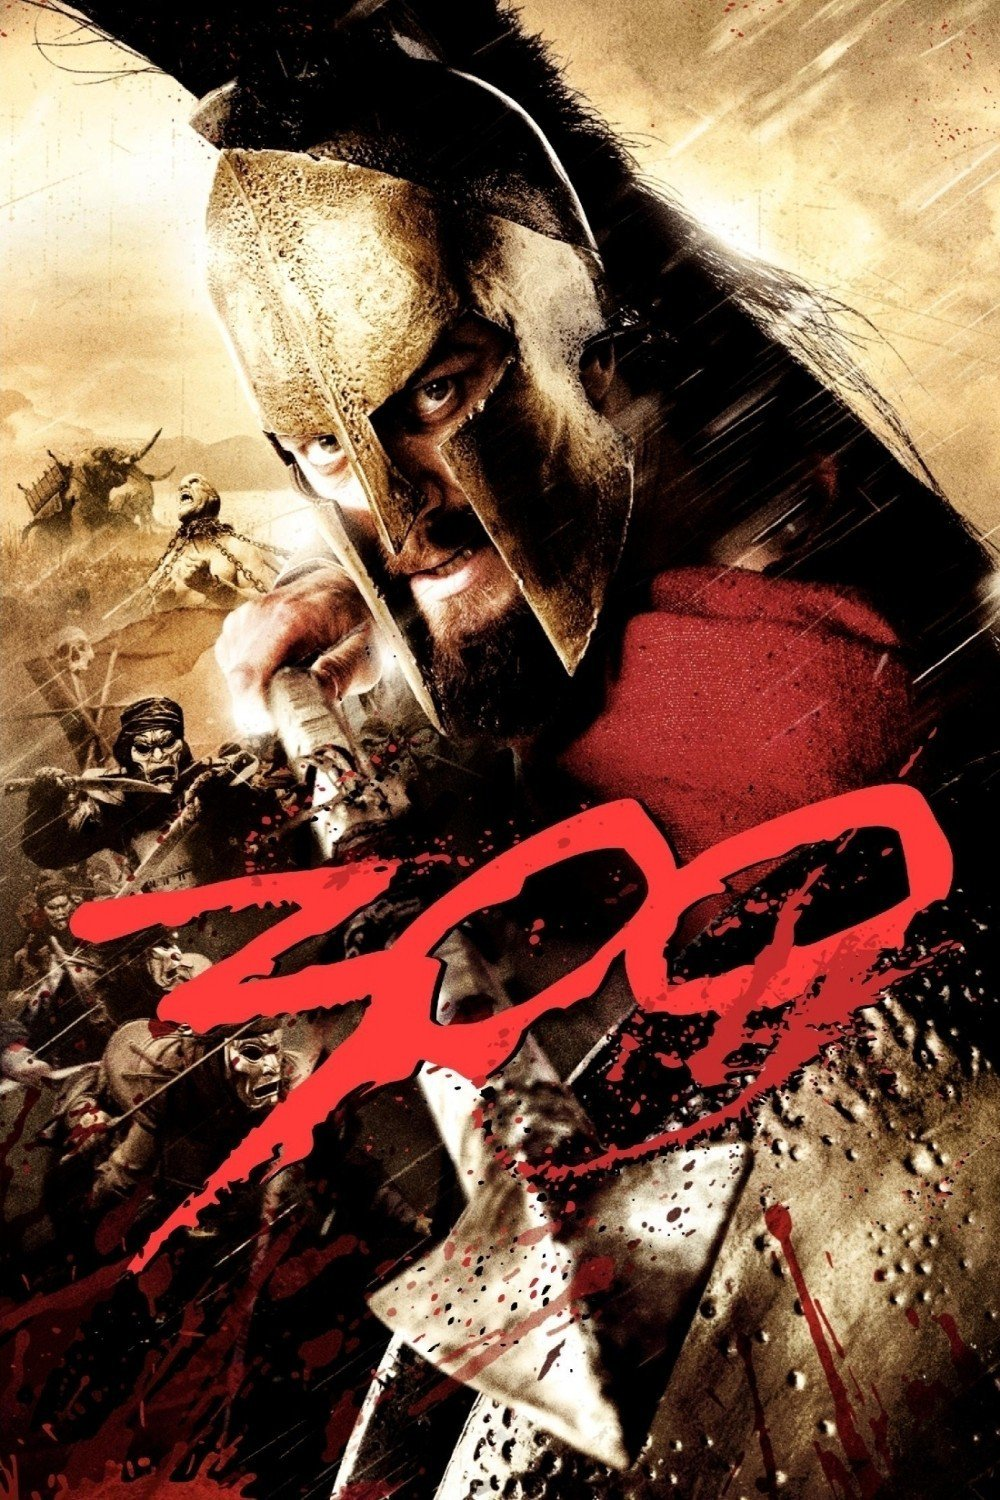 300 full movie watch and download free in 720p full hd brrip dual